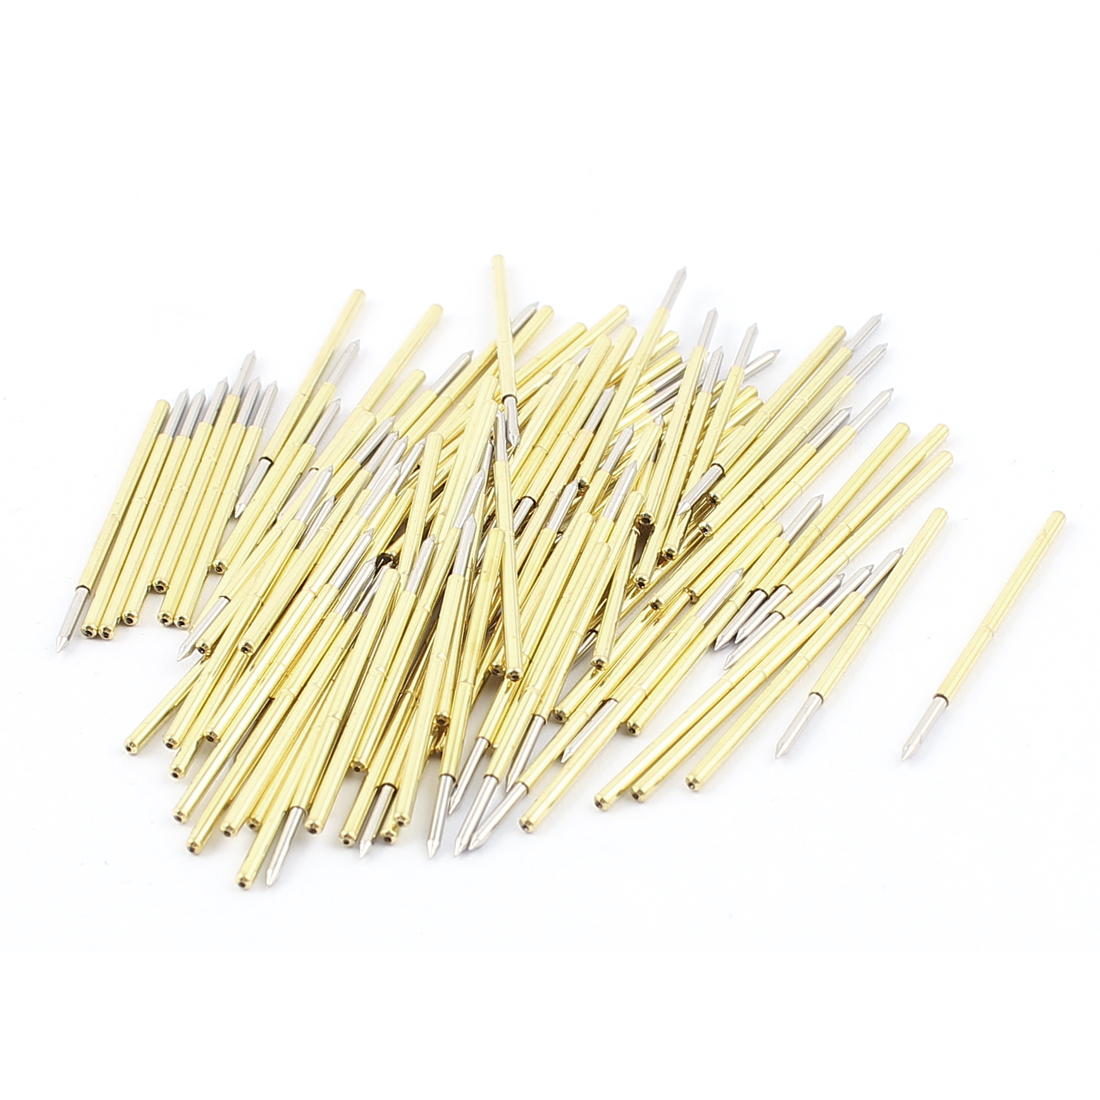 100Pcs P100-B 0.95mm Dia Spear Tip 32mm Length Metal Spring Test Probes Testing Pins Gold Tone